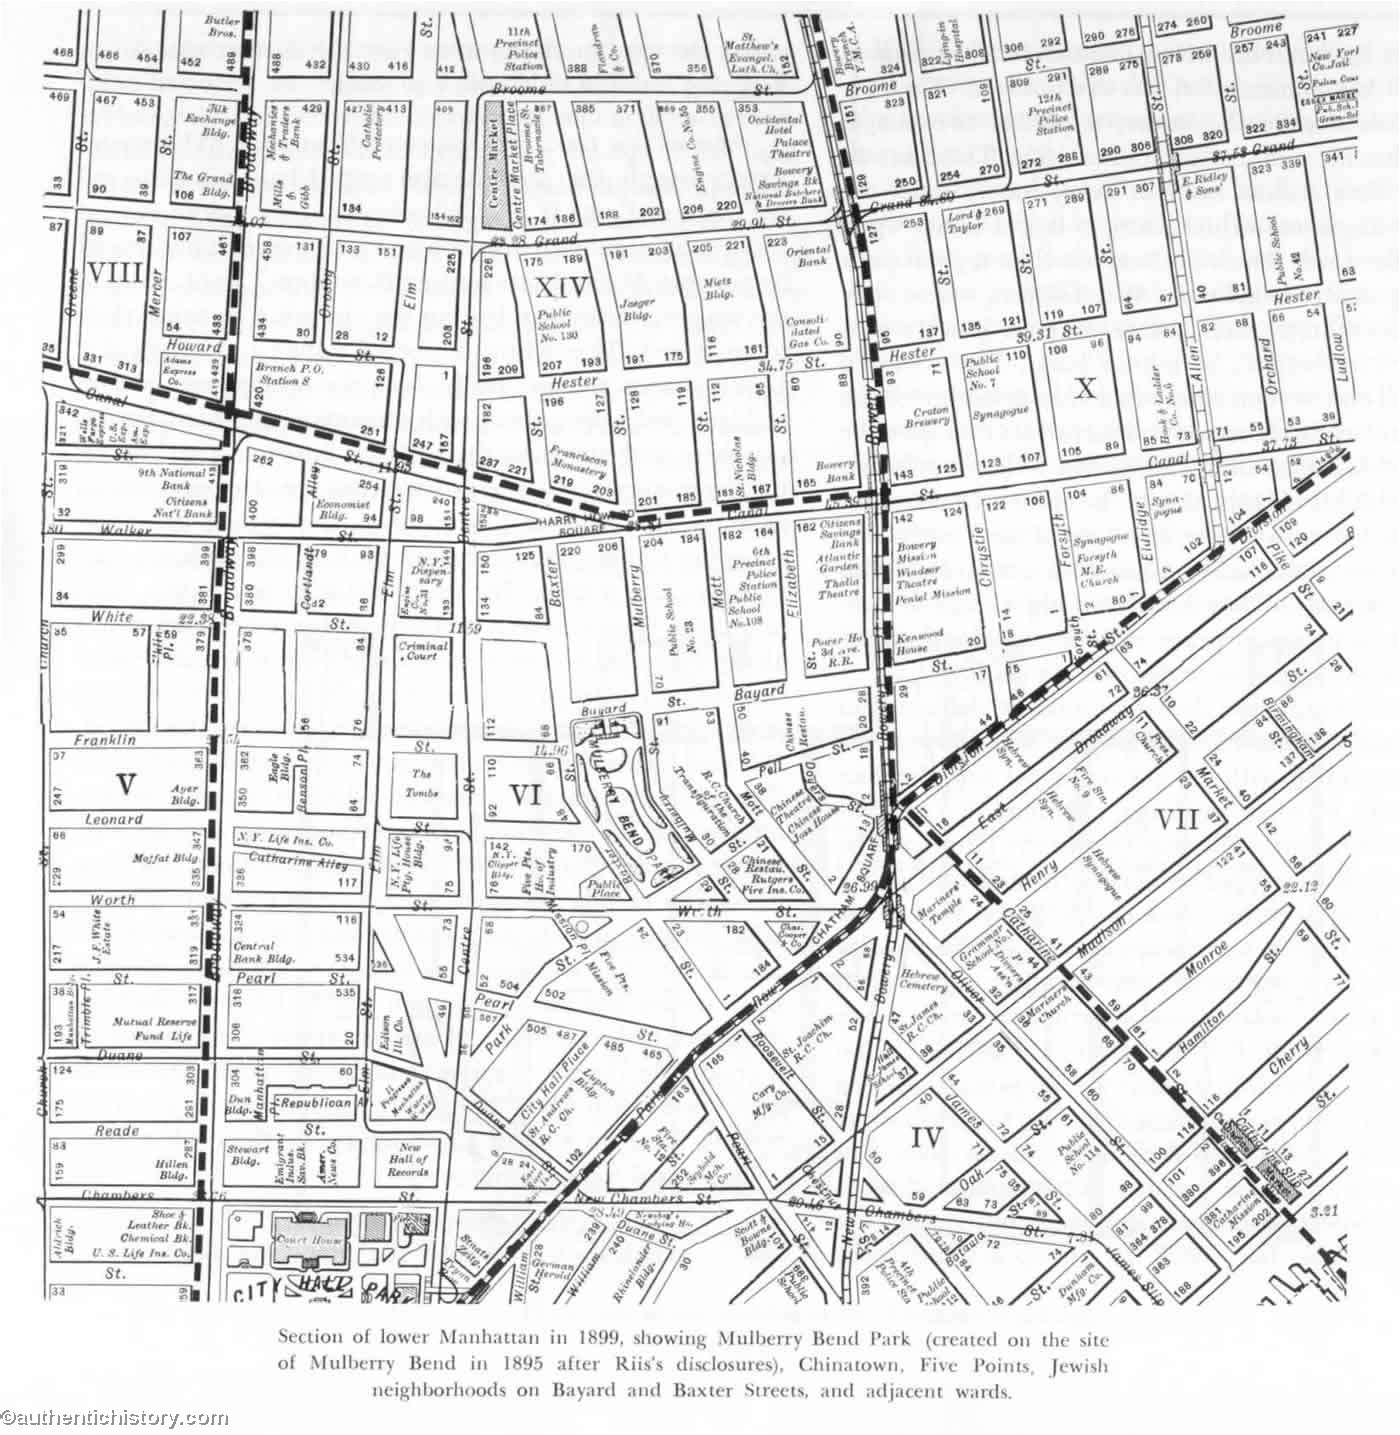 A map of the area Jacob Riis surveyed while collecting material for How the Other Half Lives.